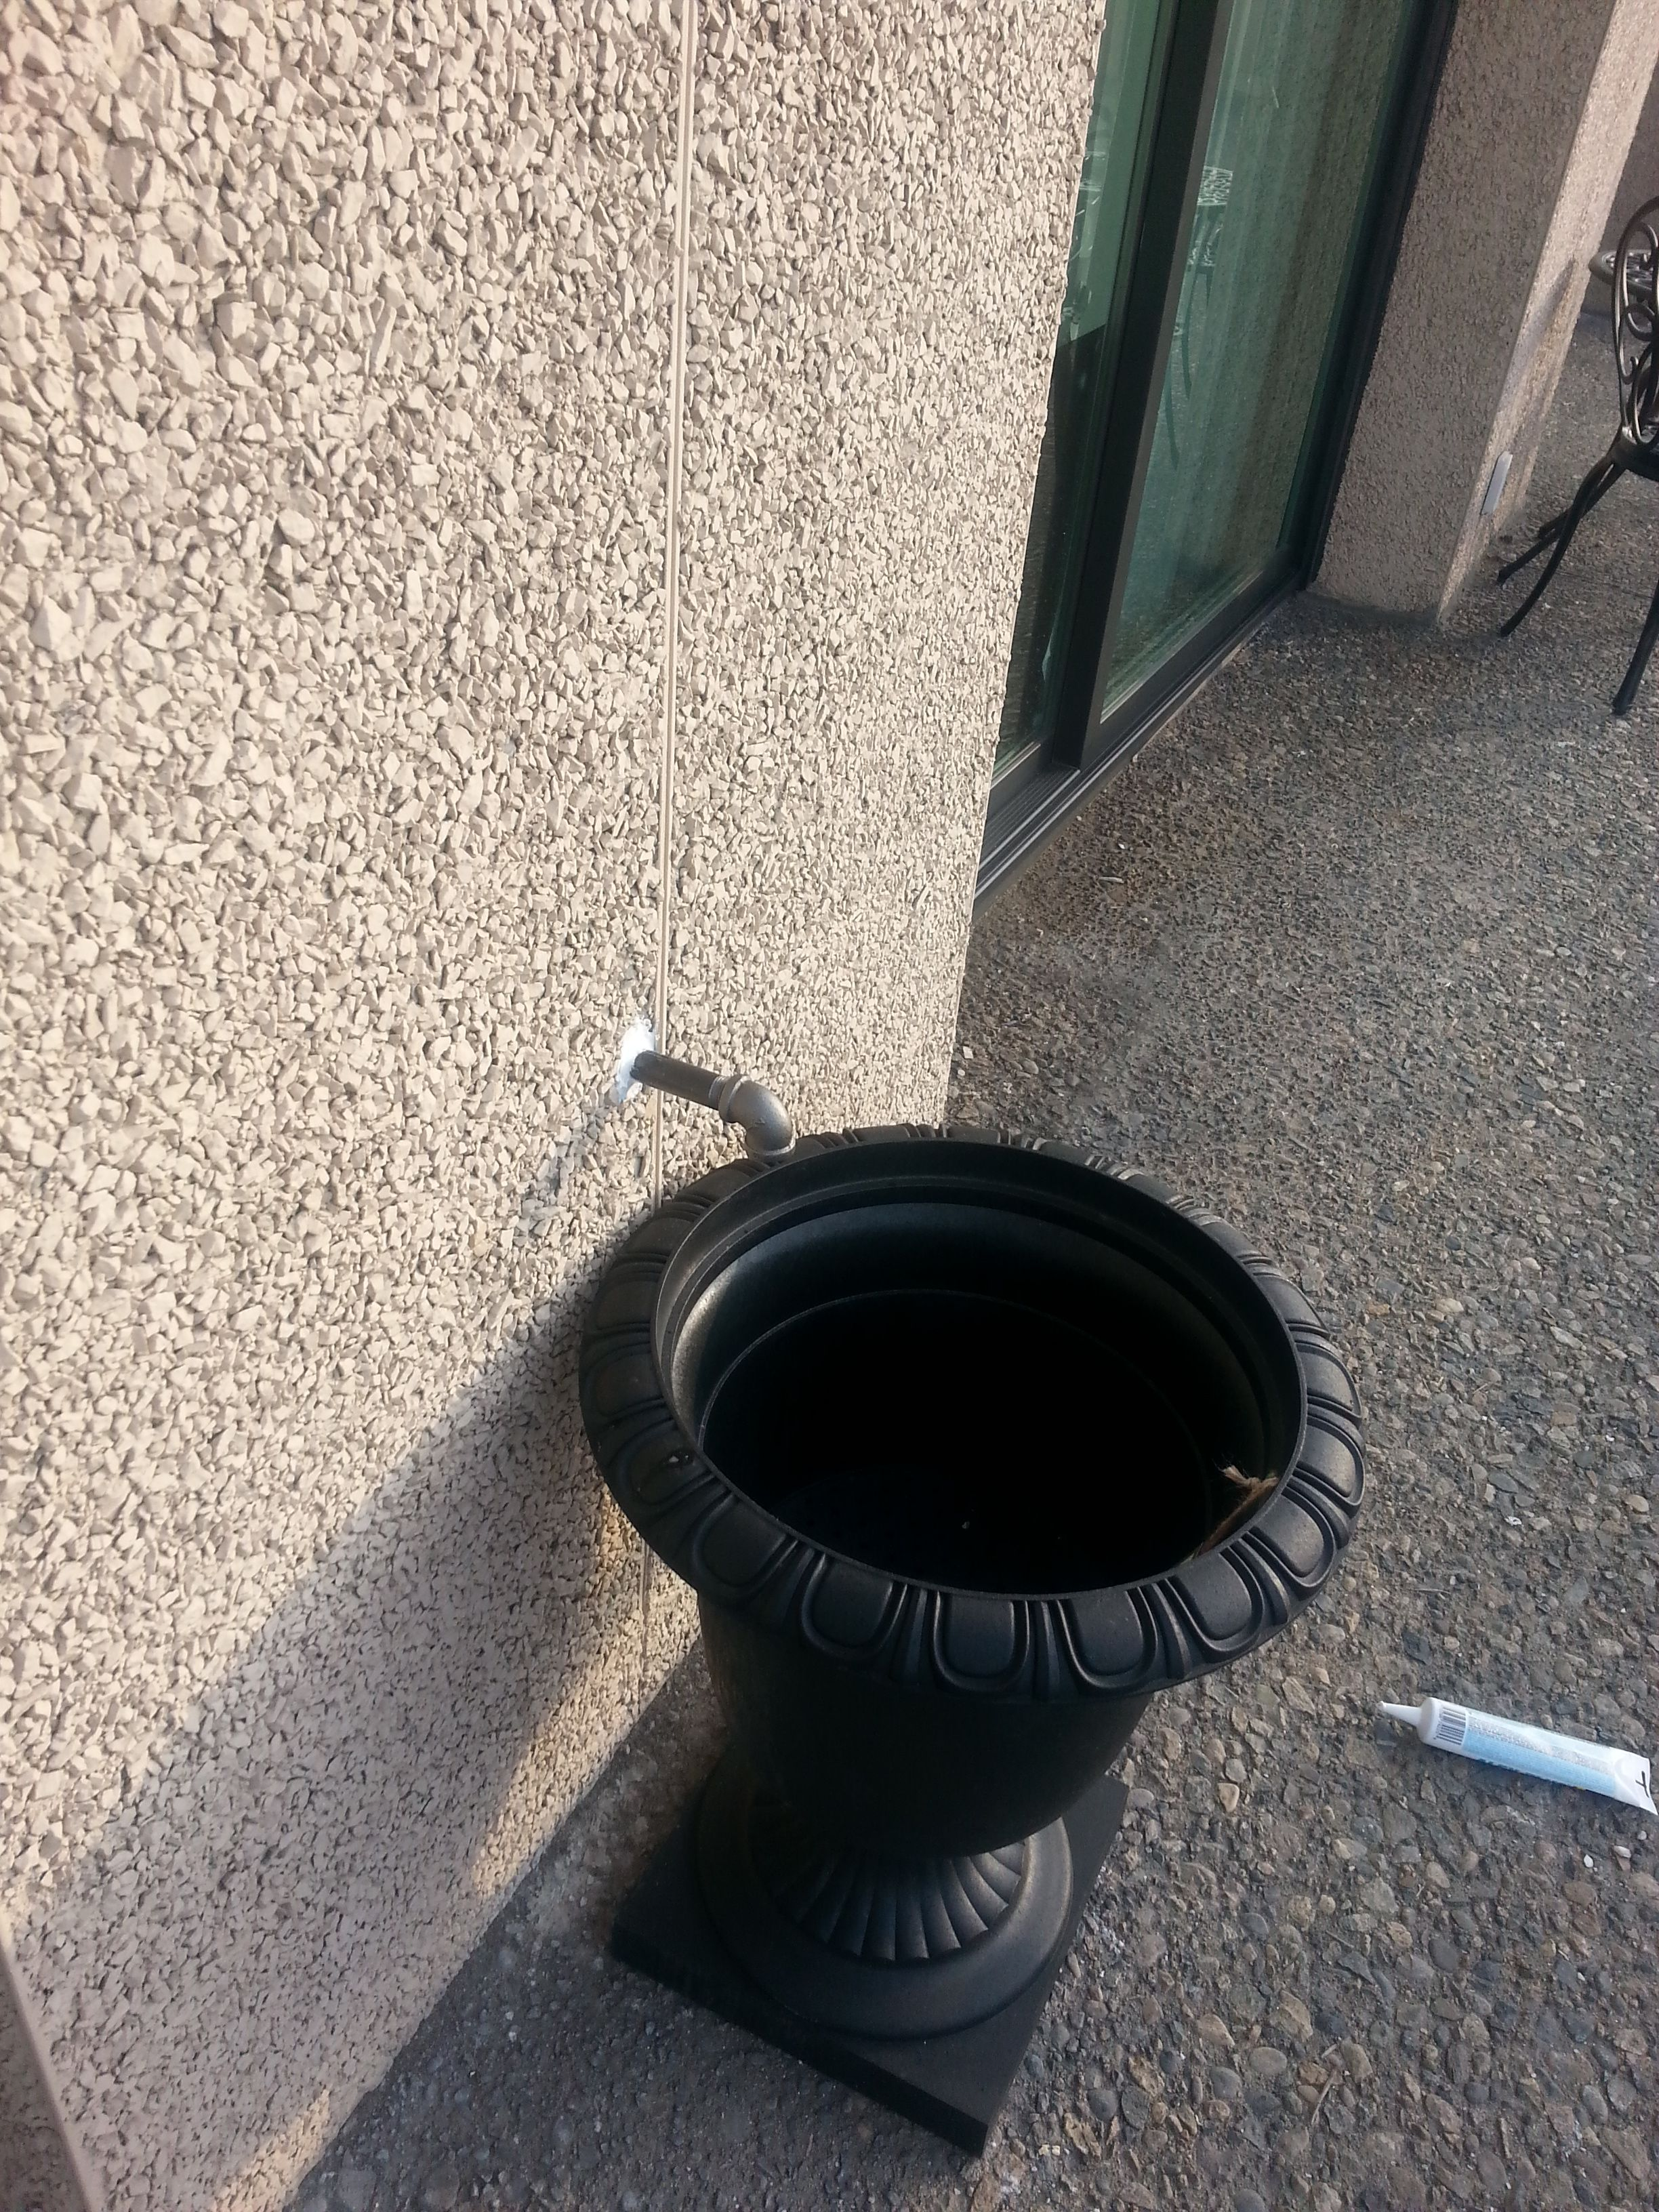 Condensate Drain From The Wall Mounts To A Flower Pot Eliminating